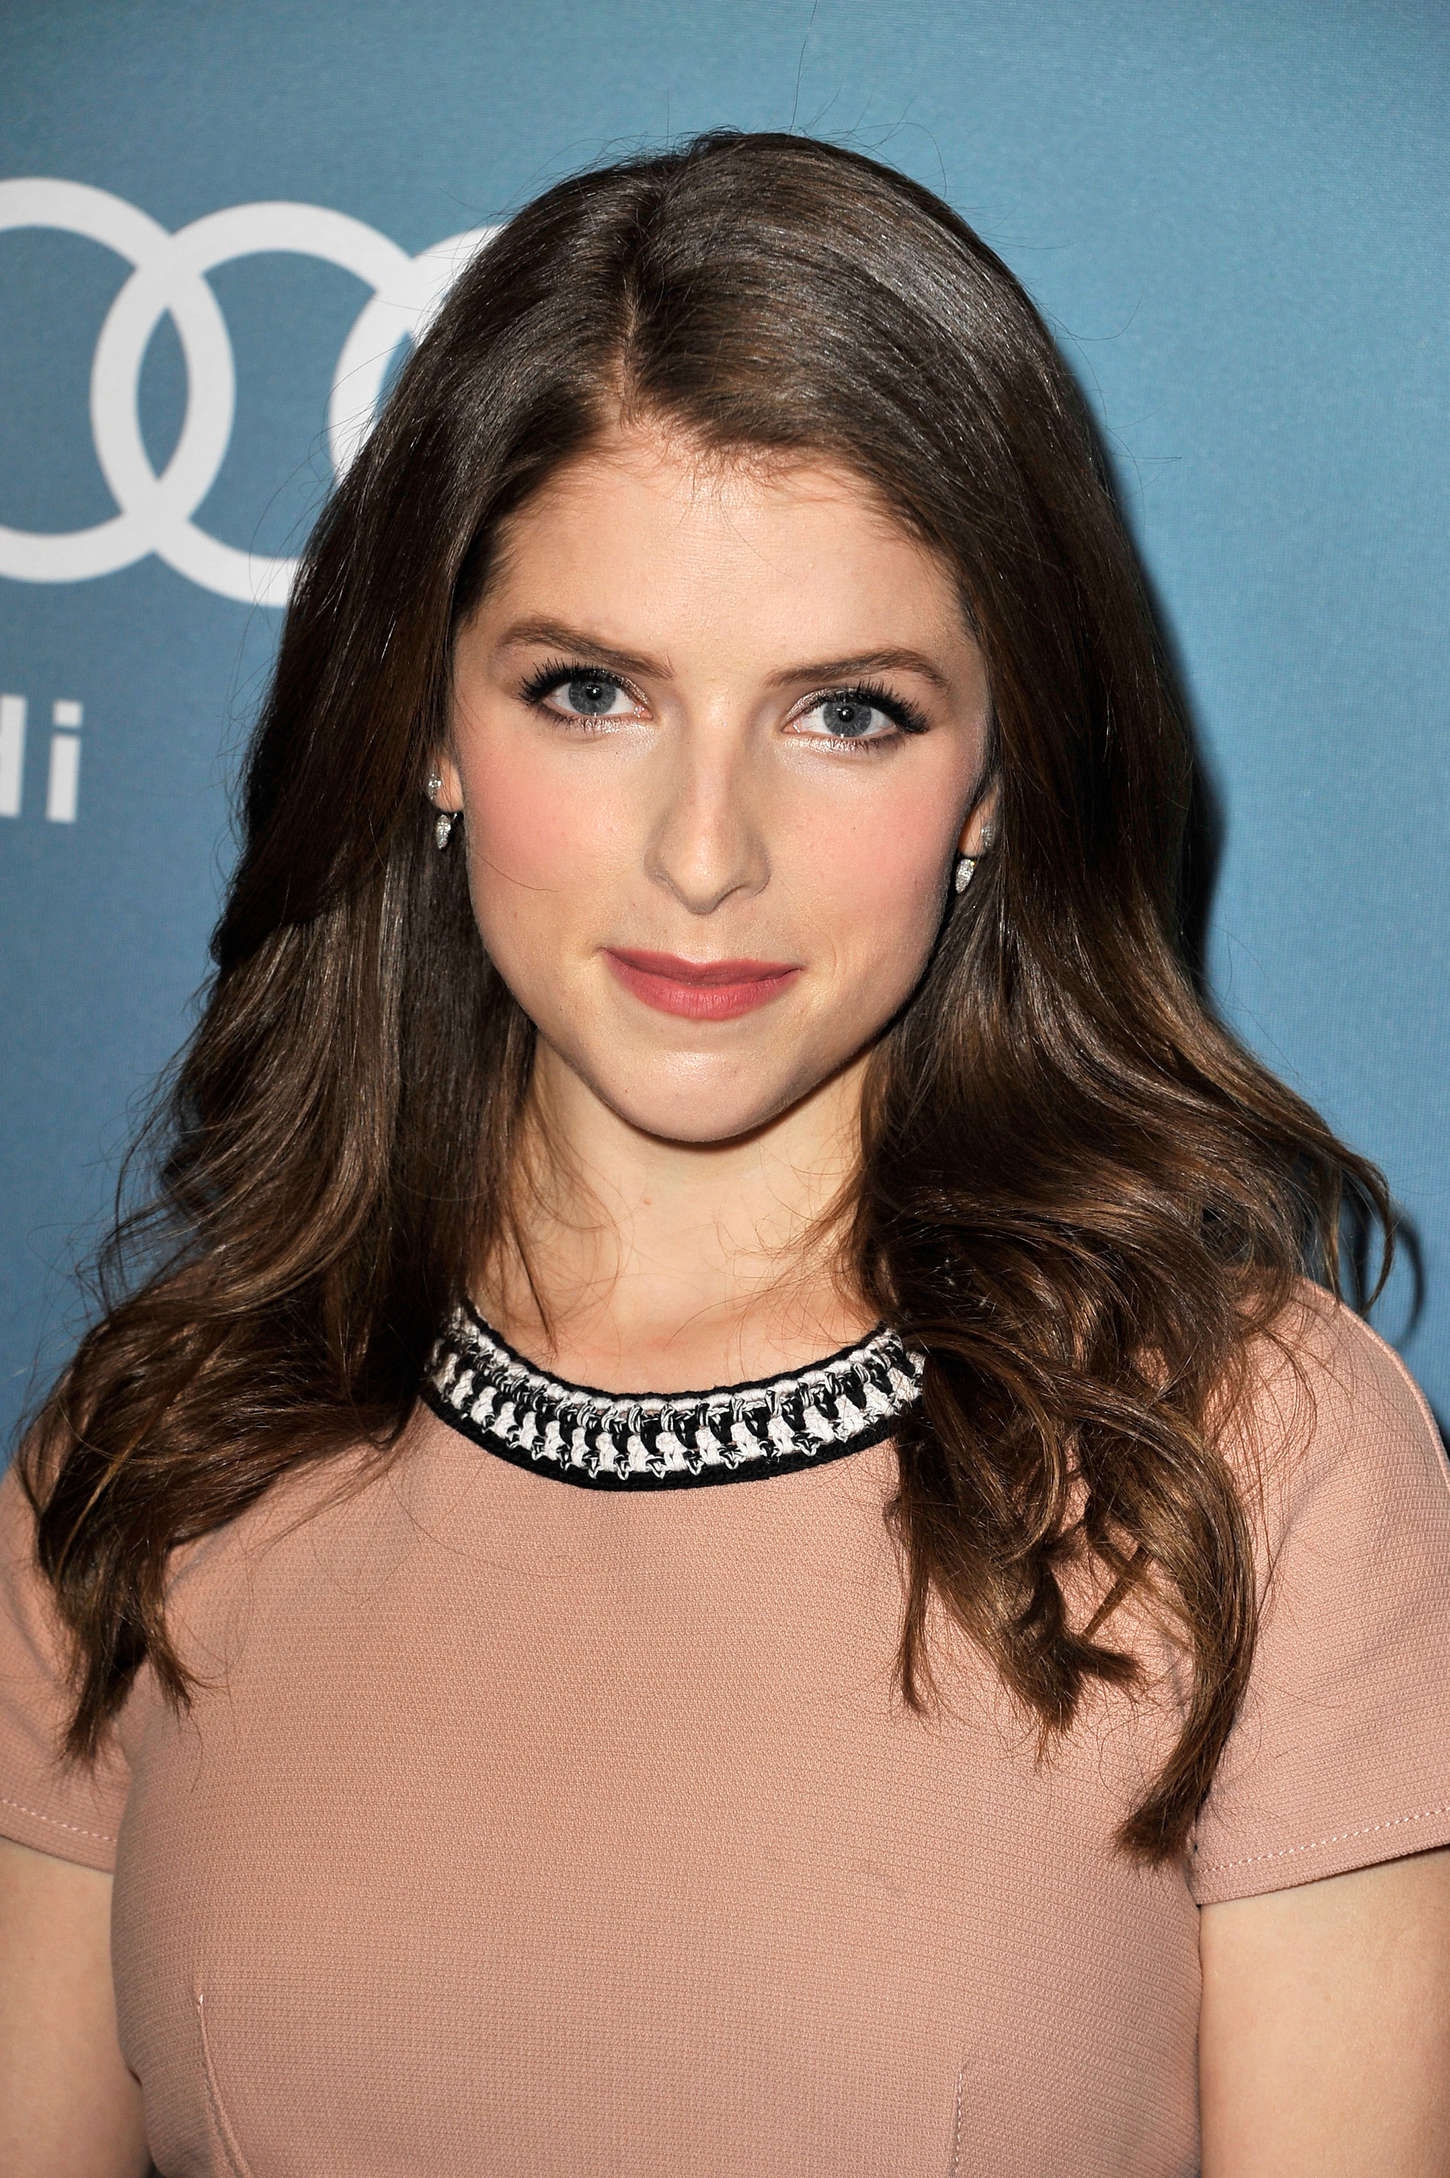 Anna Kendrick - Variety 2015 Power Of Women Luncheon in Beverly Hills